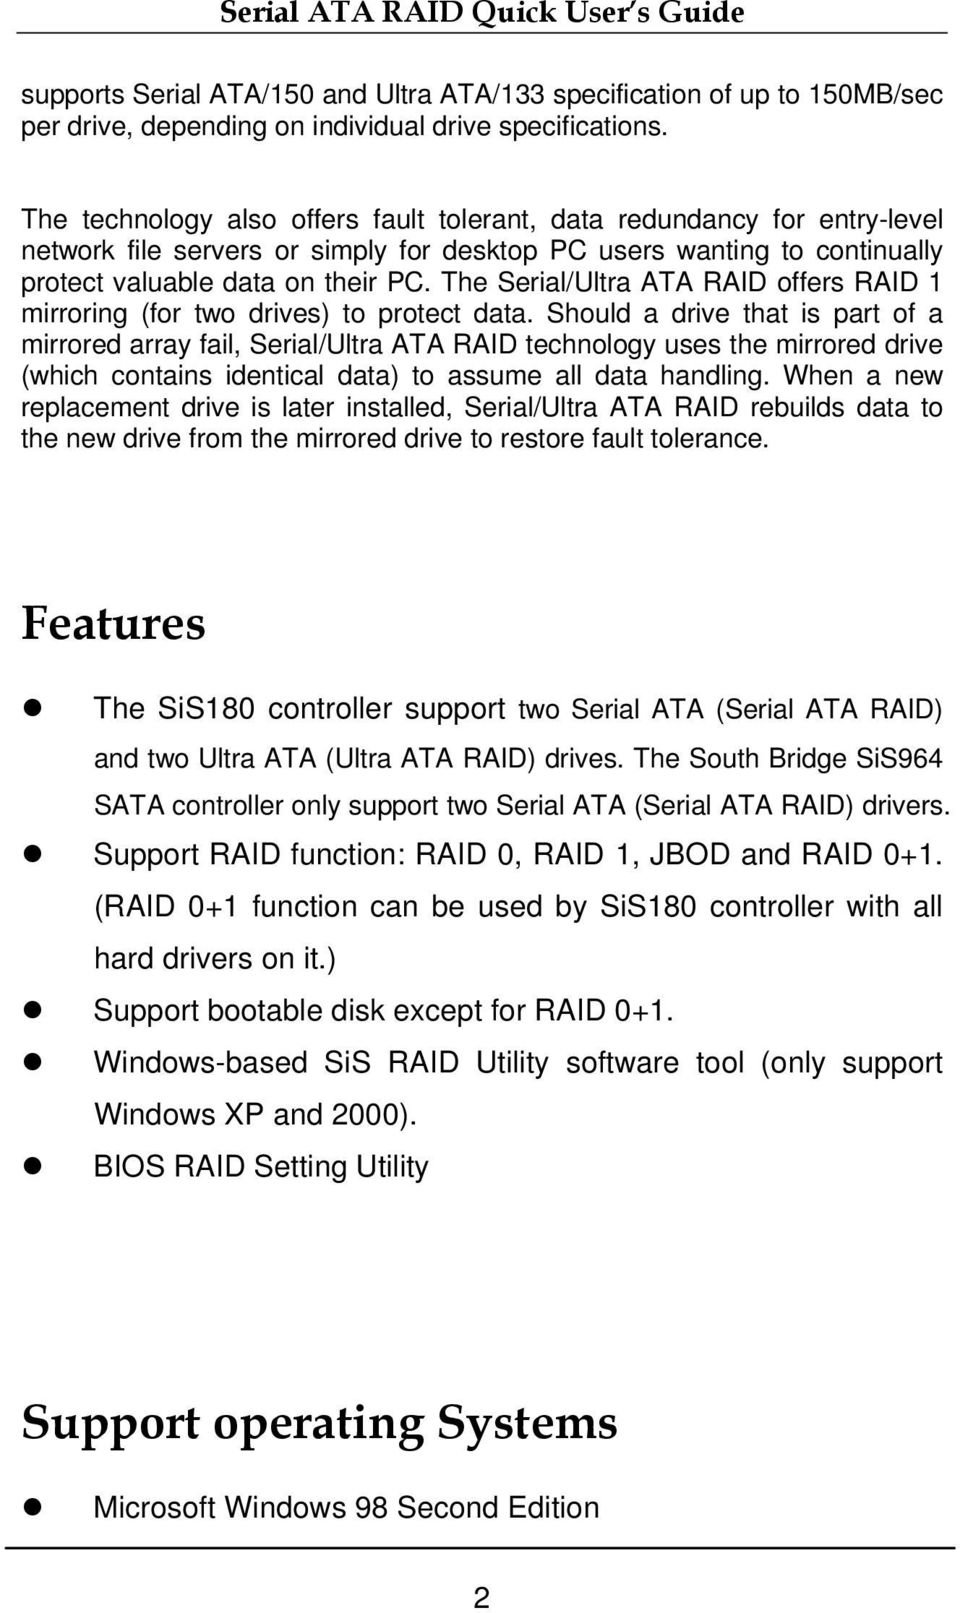 The Serial/Ultra ATA RAID offers RAID 1 mirroring (for two drives) to protect data.